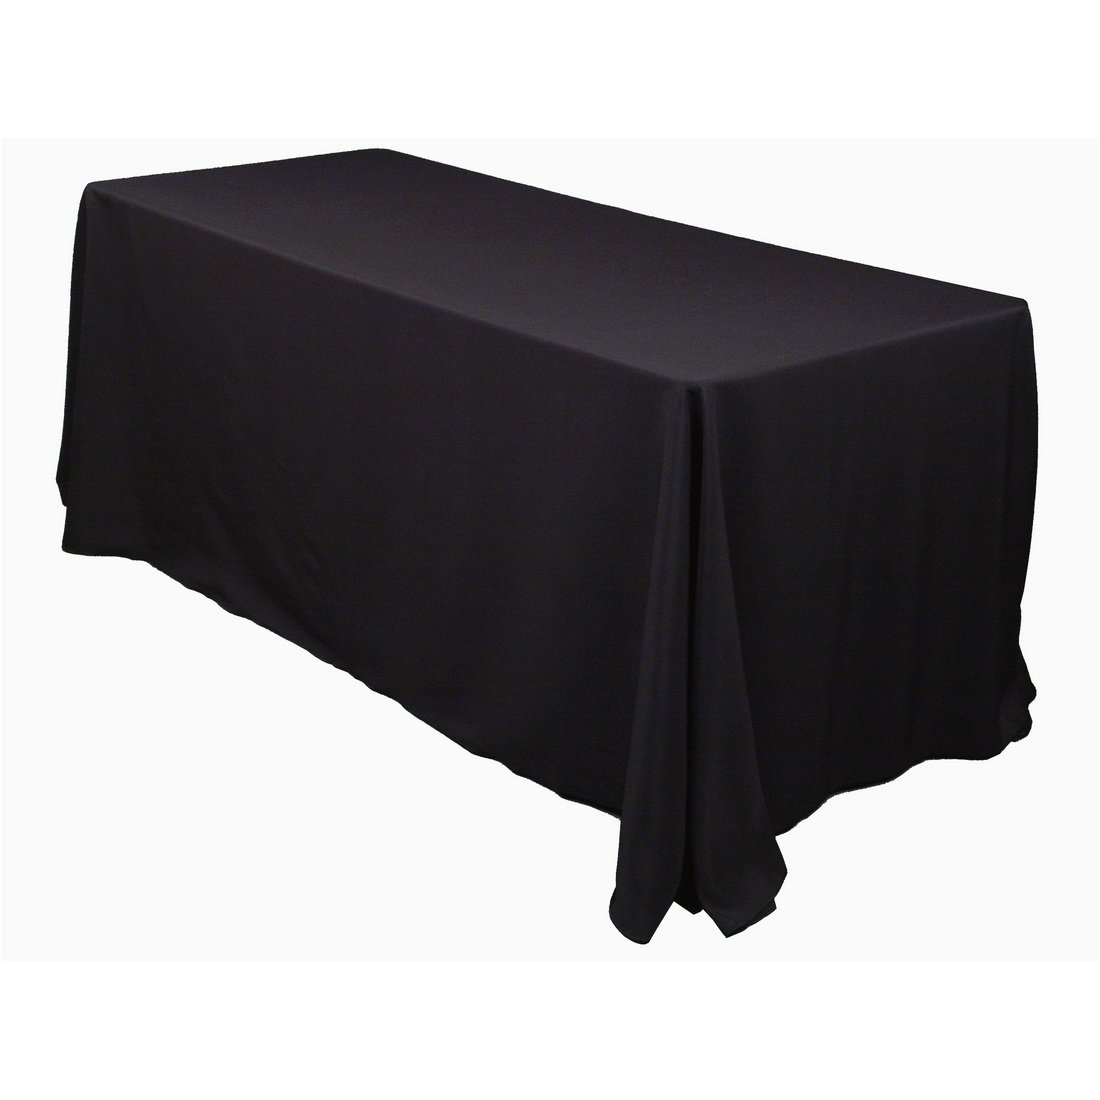 Linentablecloth 90 X 132-Inch Rectangular Polyester Tablecloth Black 1 2